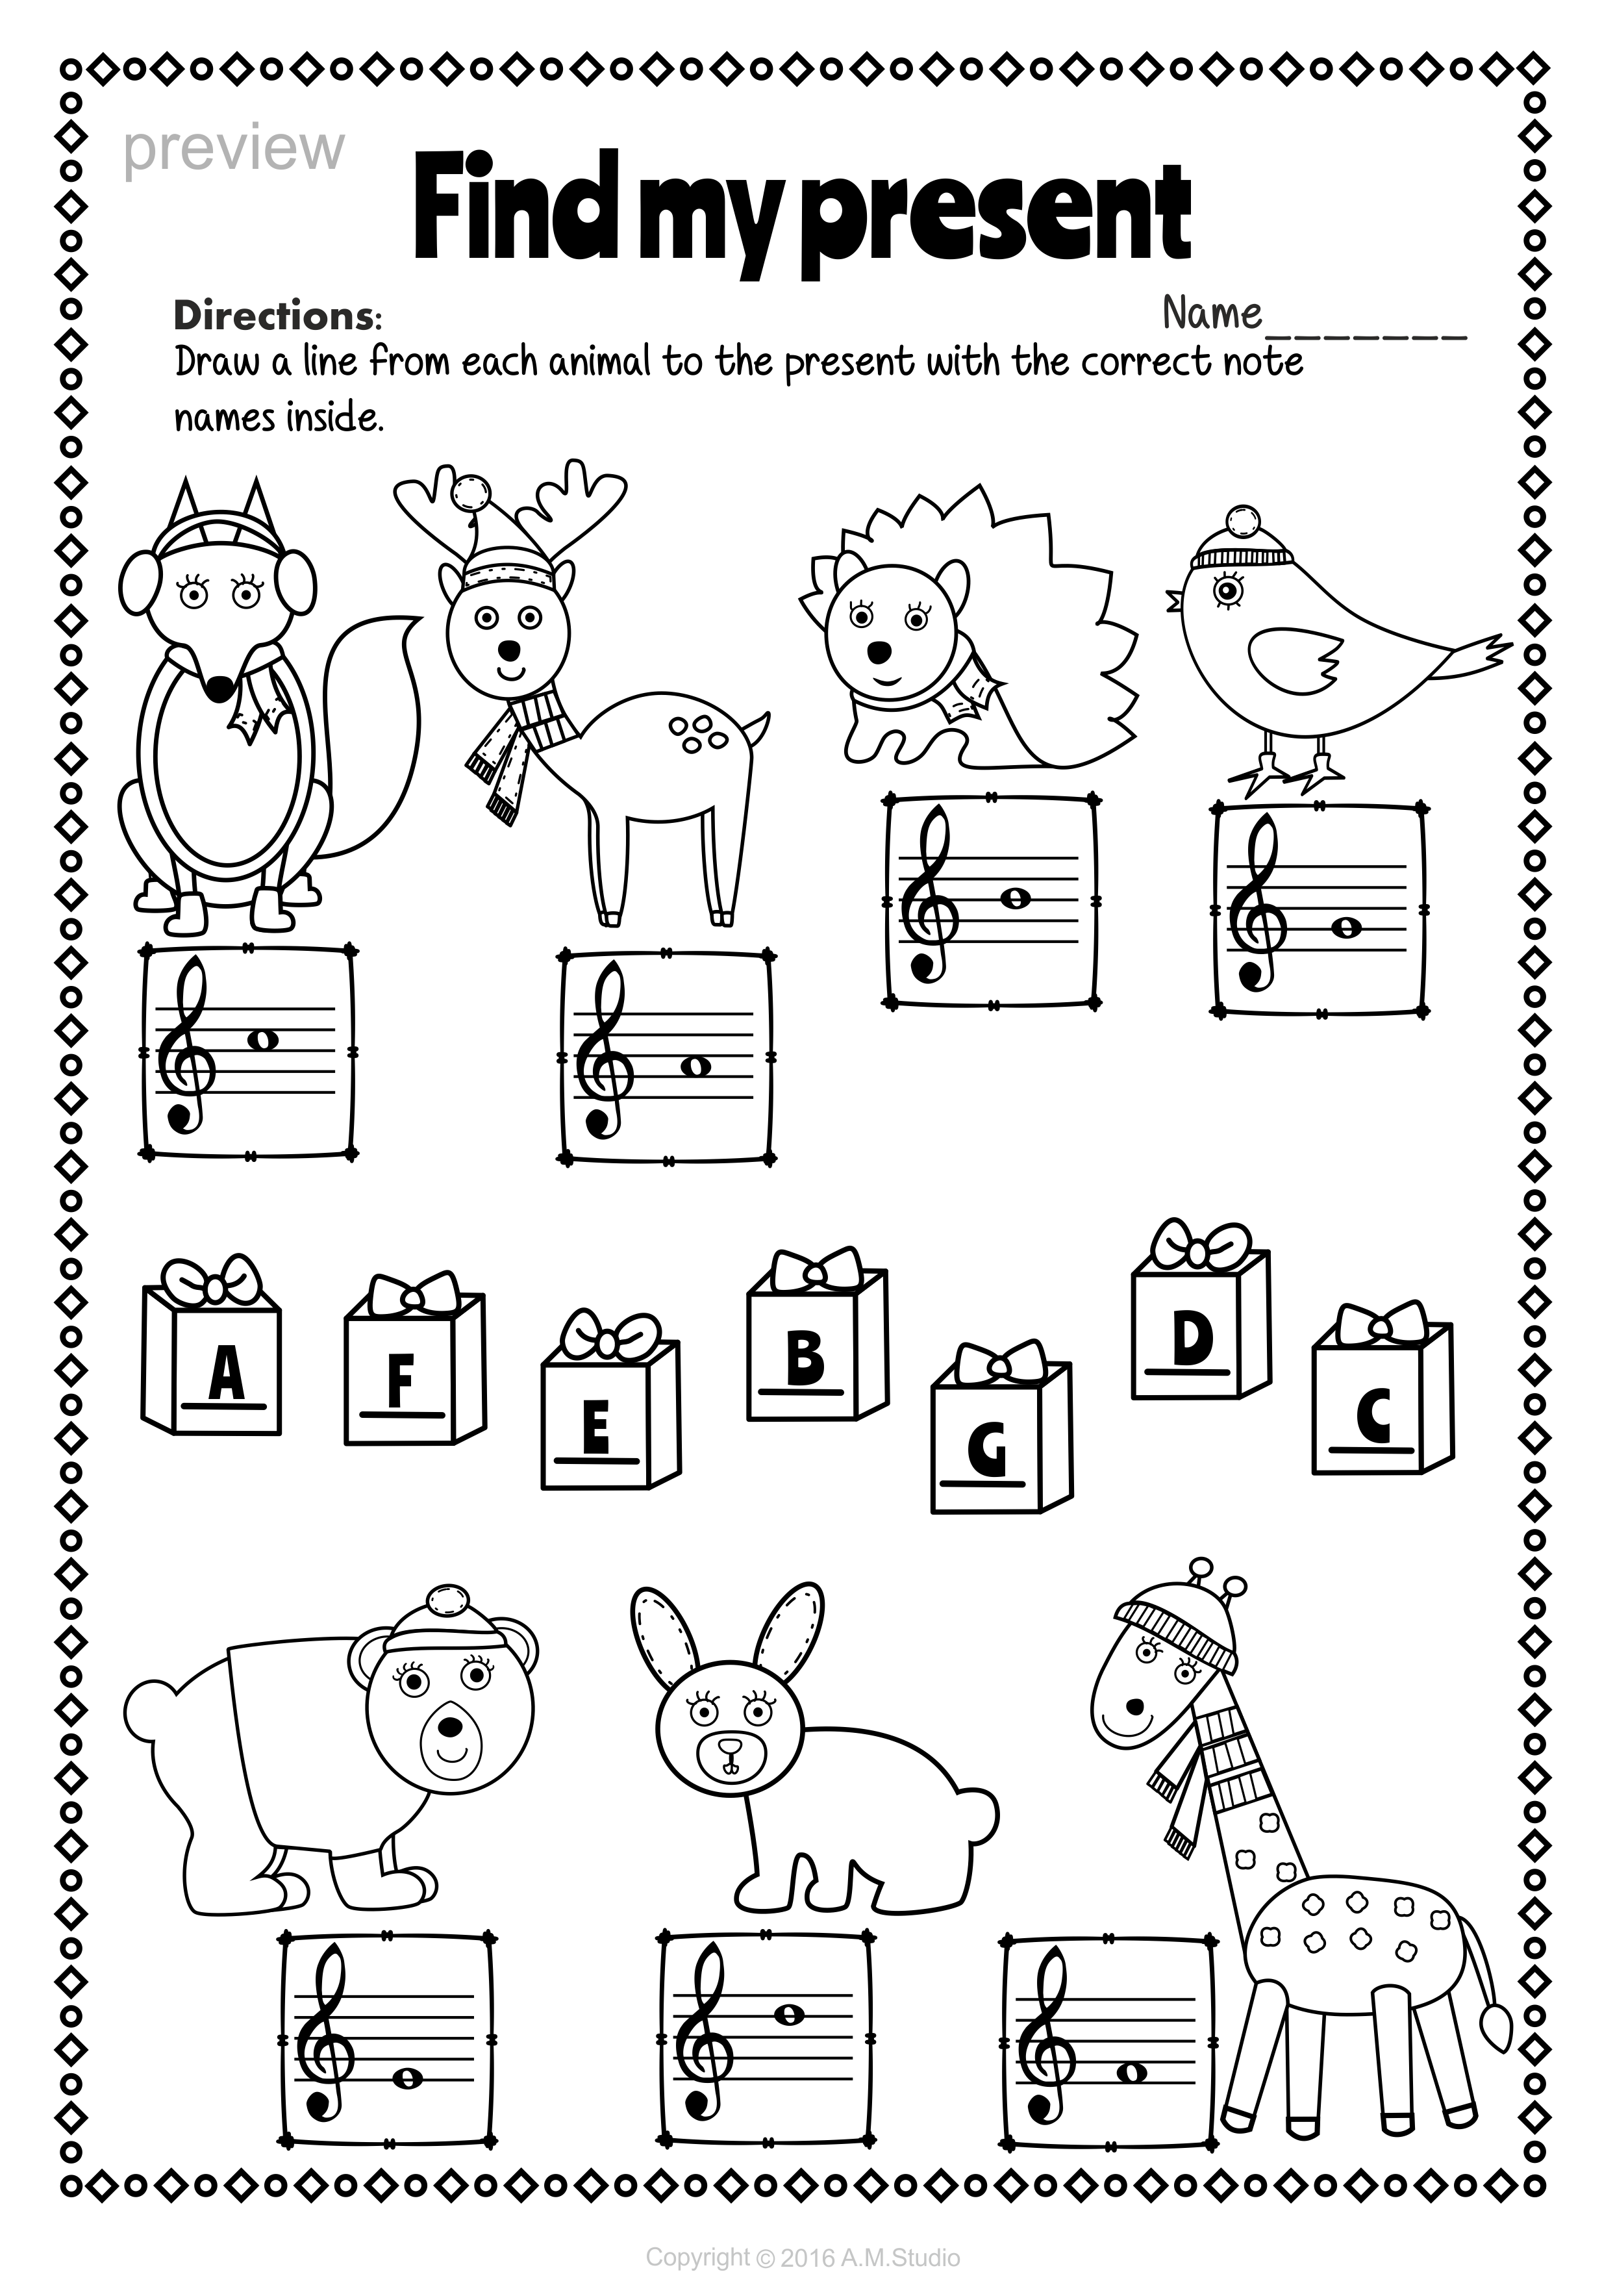 Treble Clef Note Names Worksheets For Christmas | Music